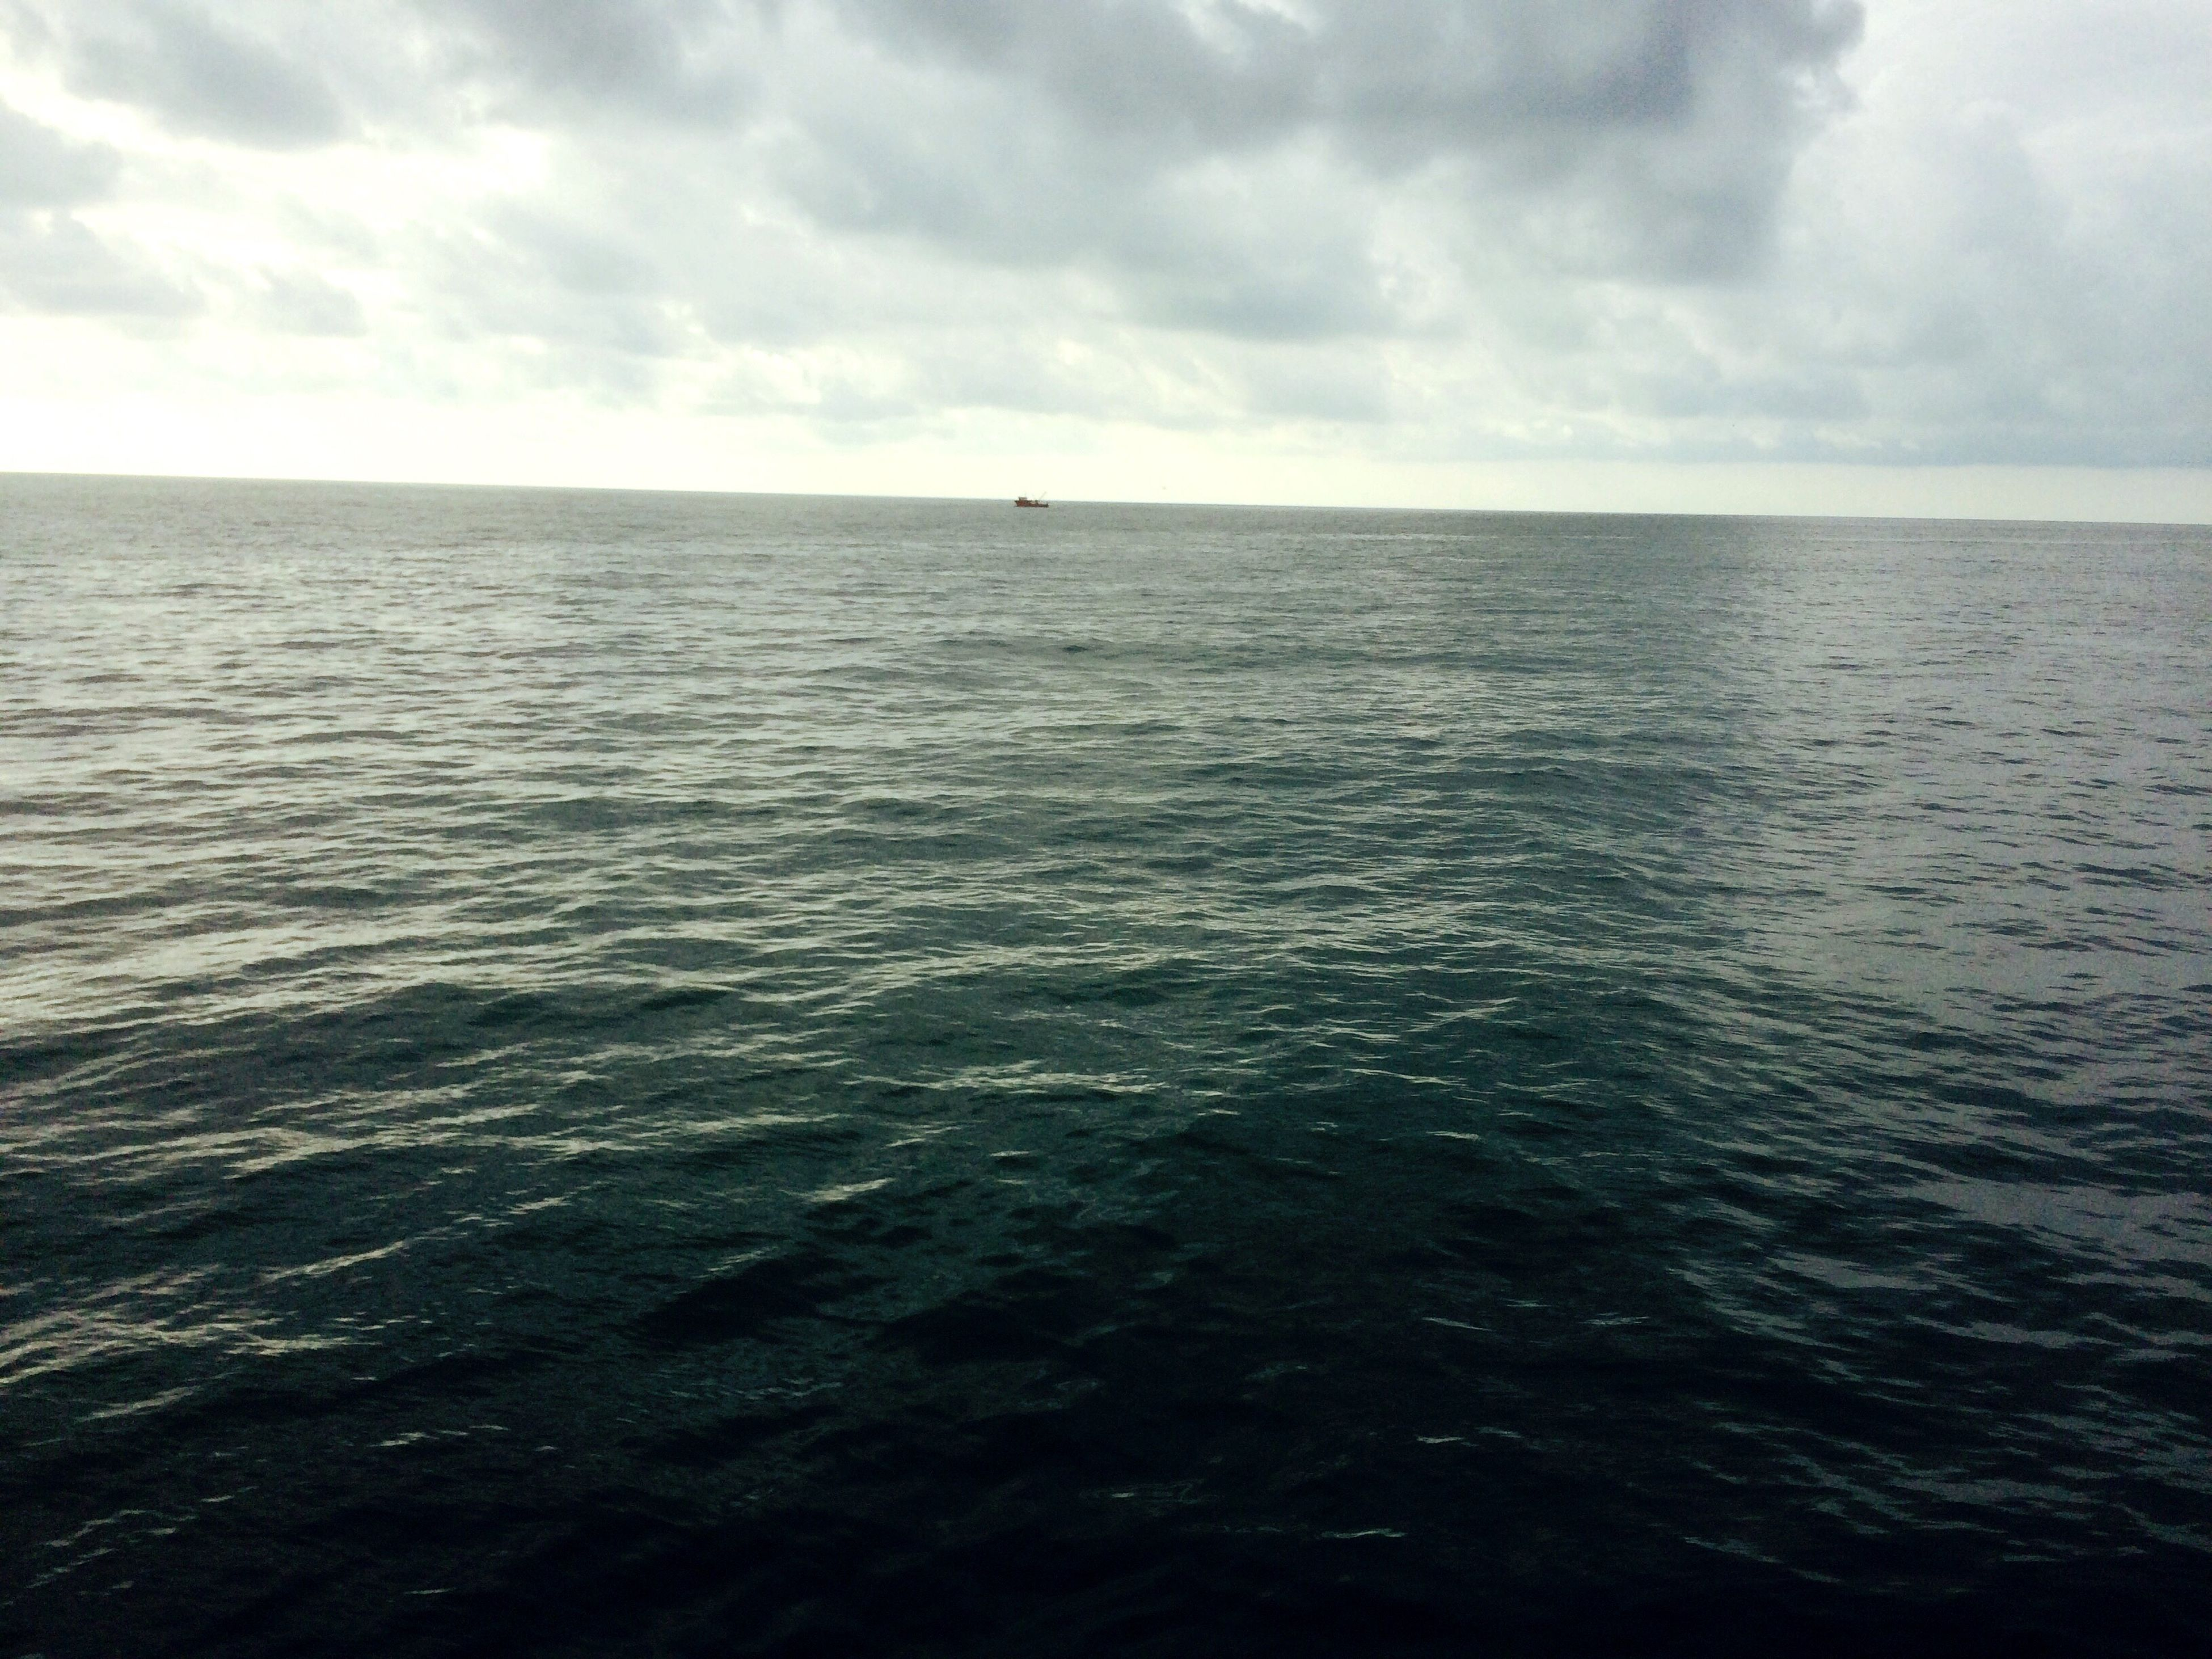 sea, water, horizon over water, beauty in nature, nature, tranquil scene, scenics, tranquility, sky, rippled, no people, waterfront, outdoors, day